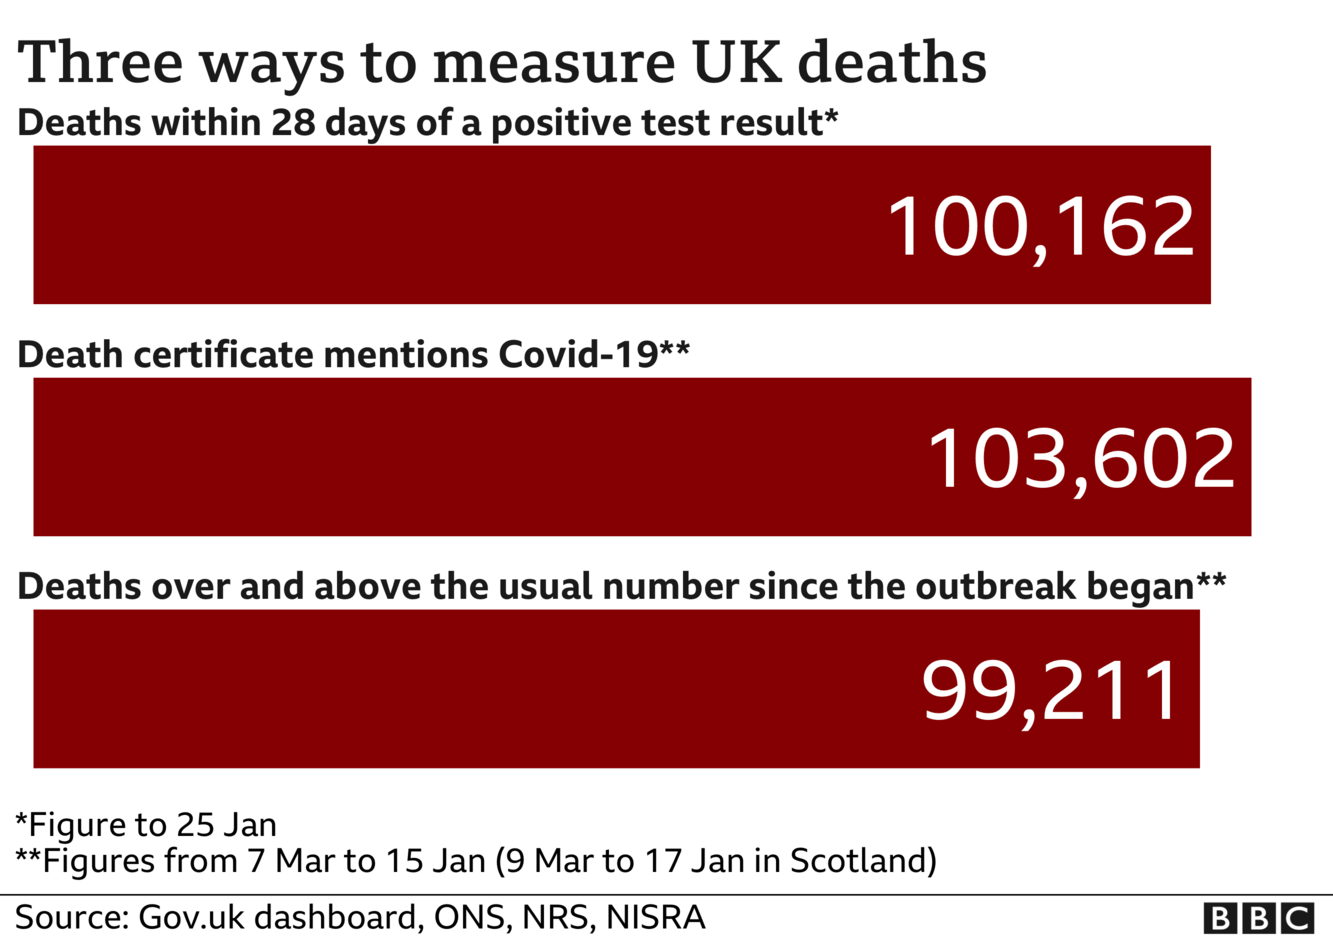 Chart showing three different totals for coronavirus deaths - the government measures all deaths within 28 days of a positive test, that total is 100,162. The ONS includes all deaths where coronavirus was mentioned on the death certificate, that total is 103,602 and the final total includes all deaths over and above the average for the time of year and that total is now 99,211, updated 26 Jan